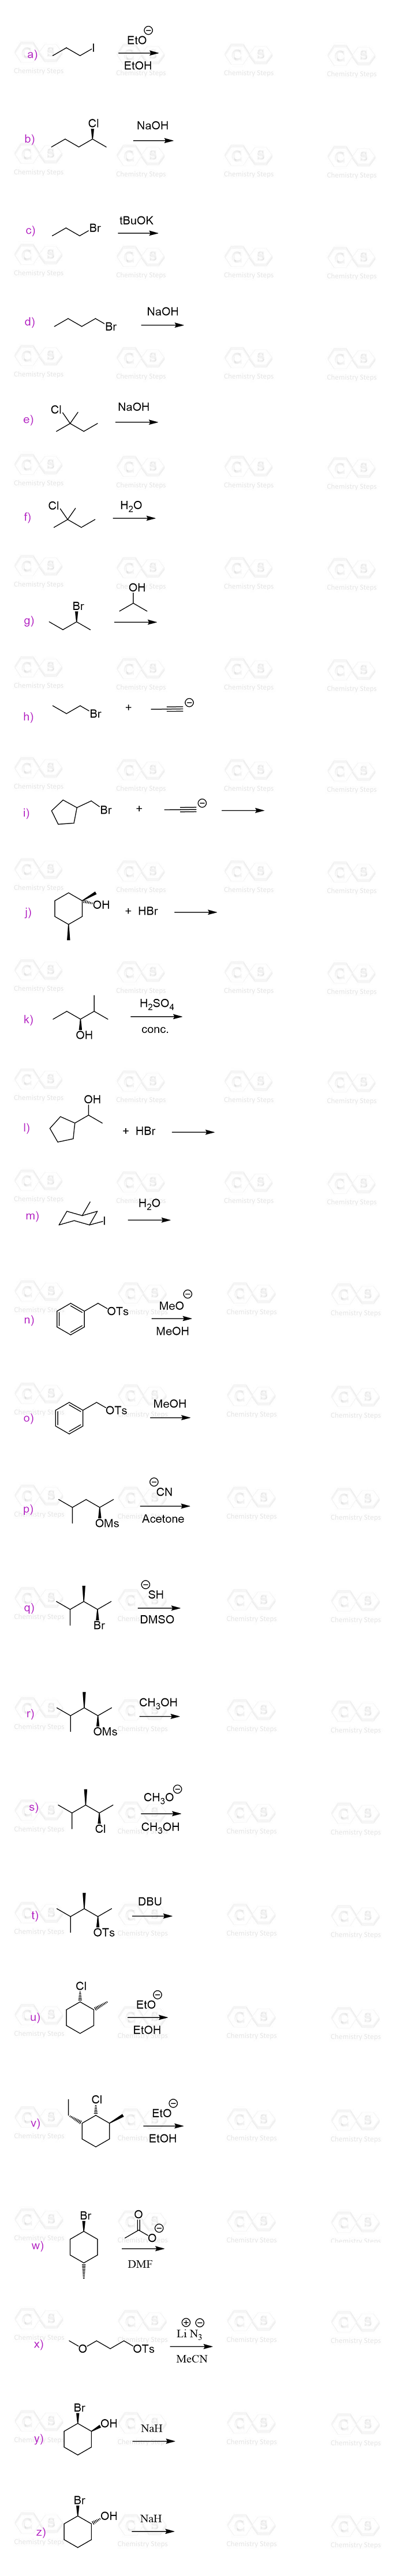 When is the mechanism SN1 SN2 E1 E2 practice problem exercise nucleophilic substitution elimination